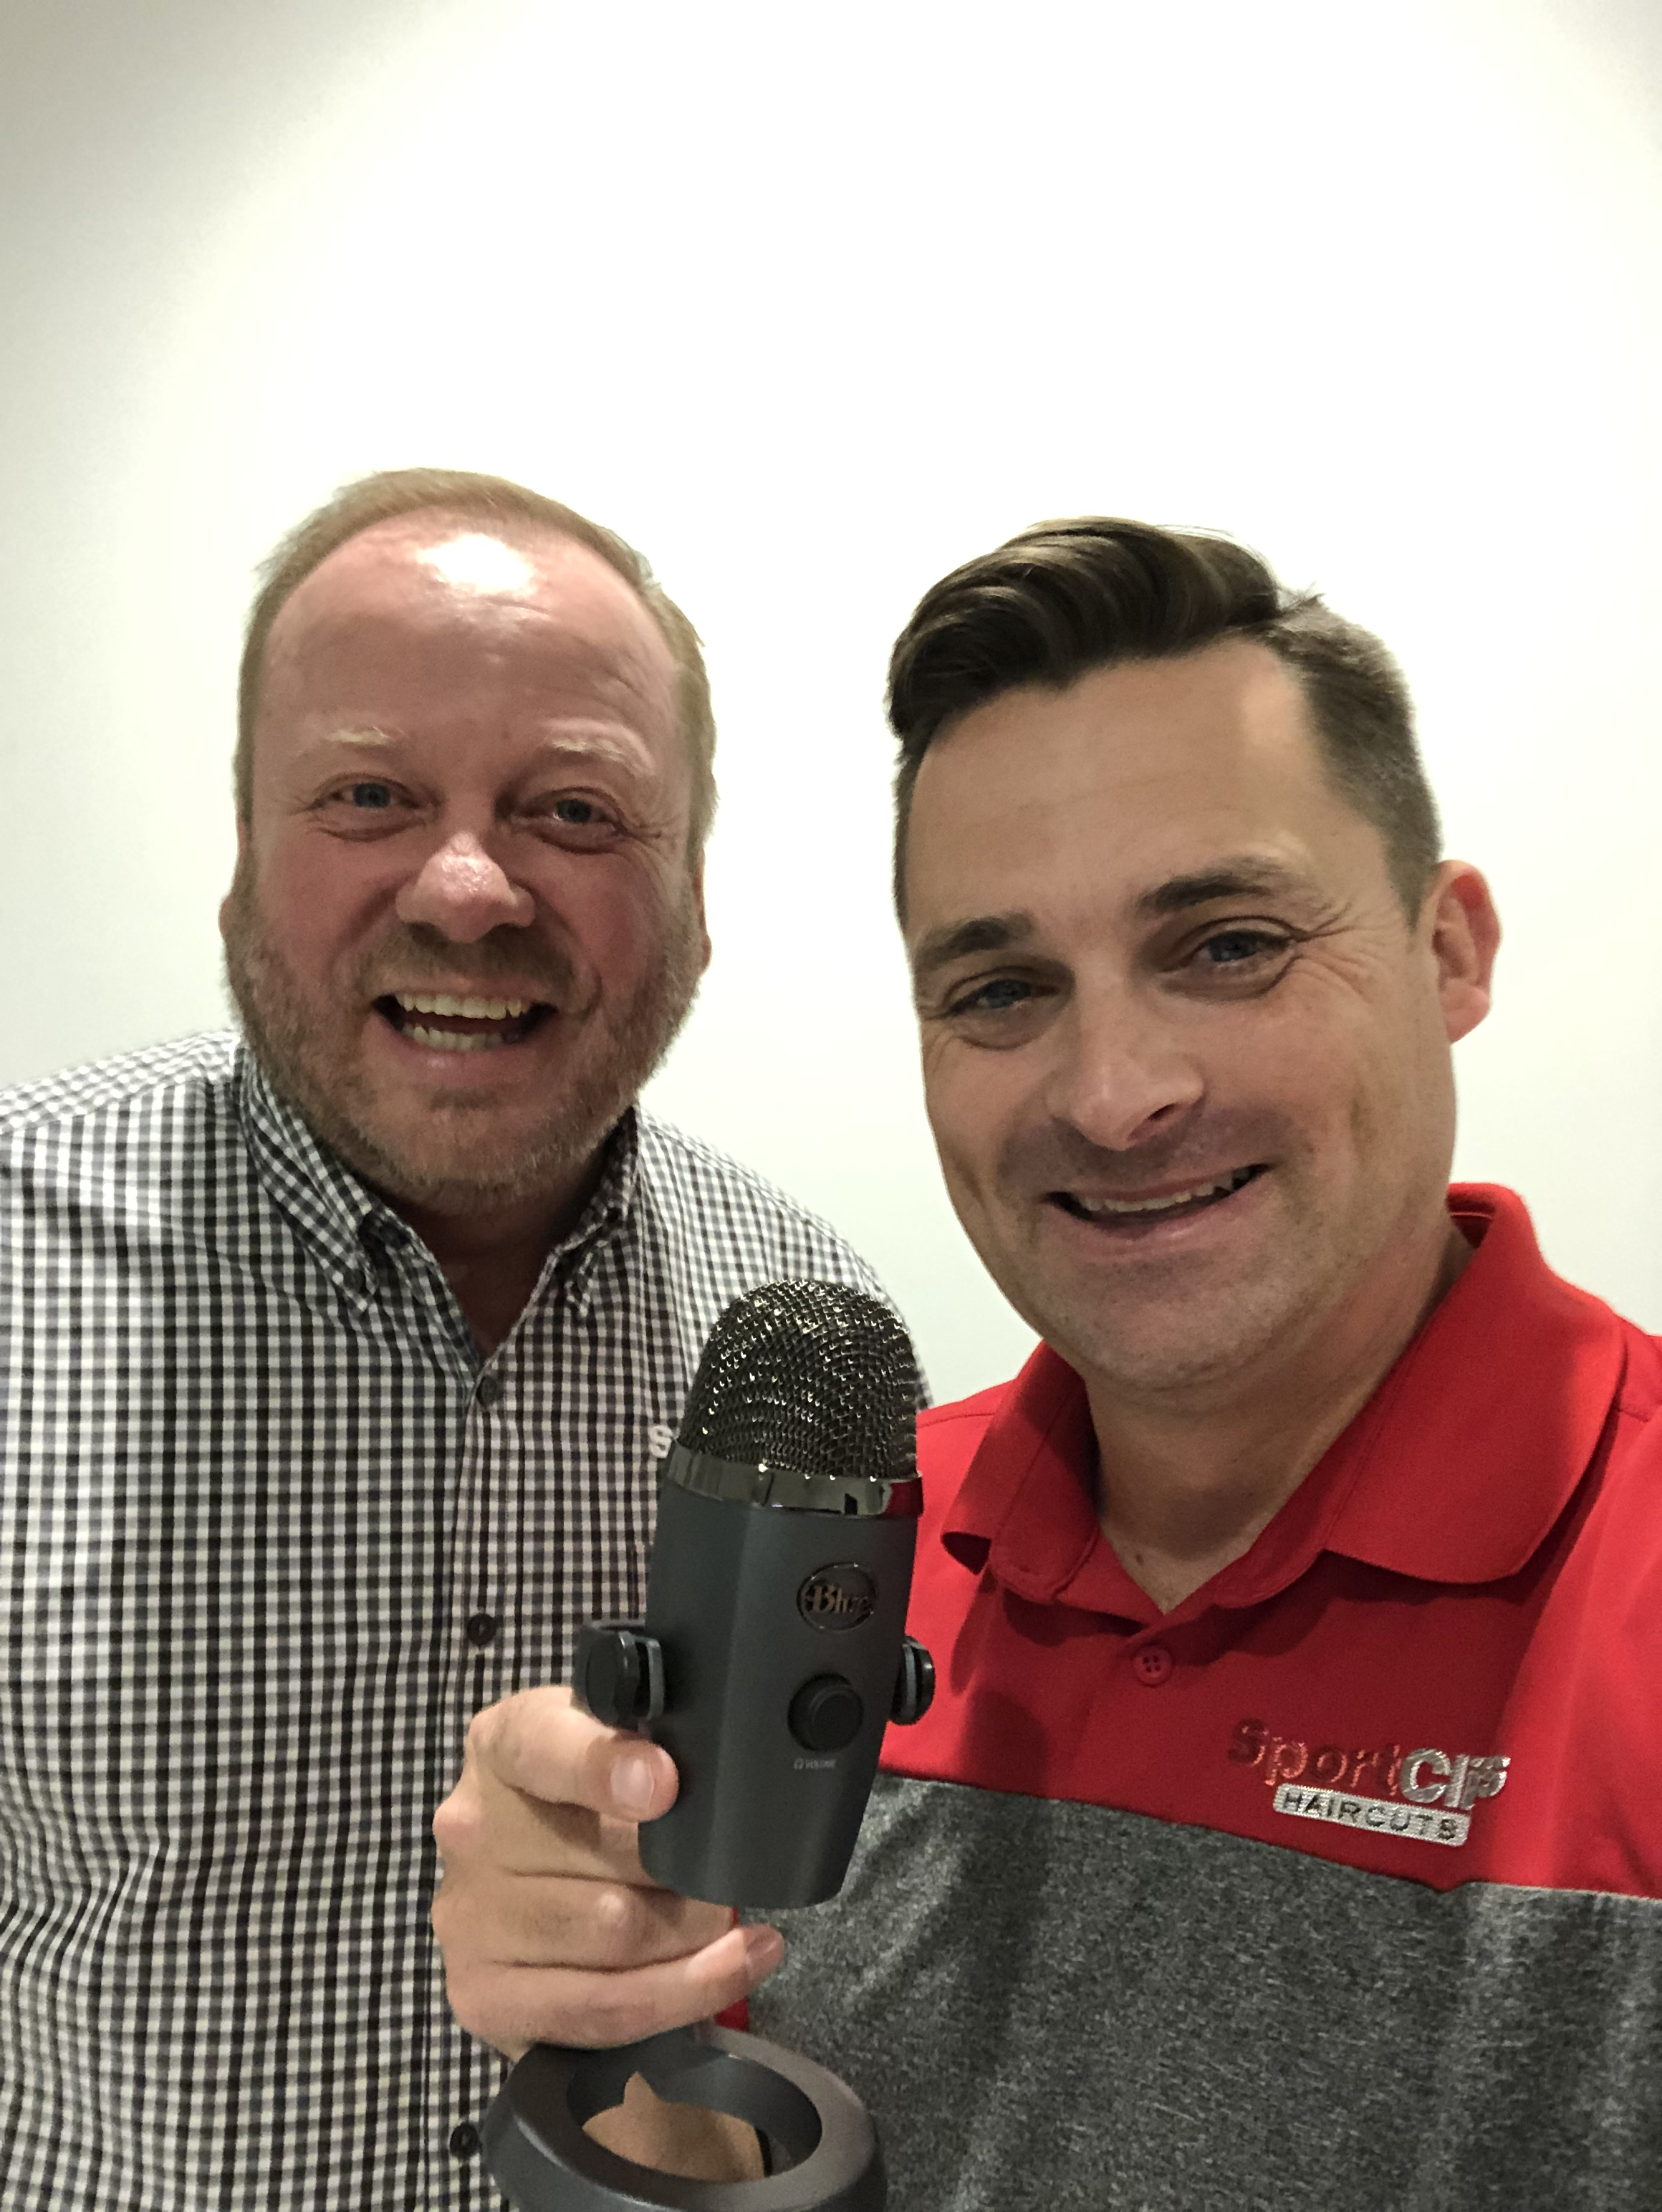 Duke Sorensen and Chad Jordan holding a microphone for their podcast